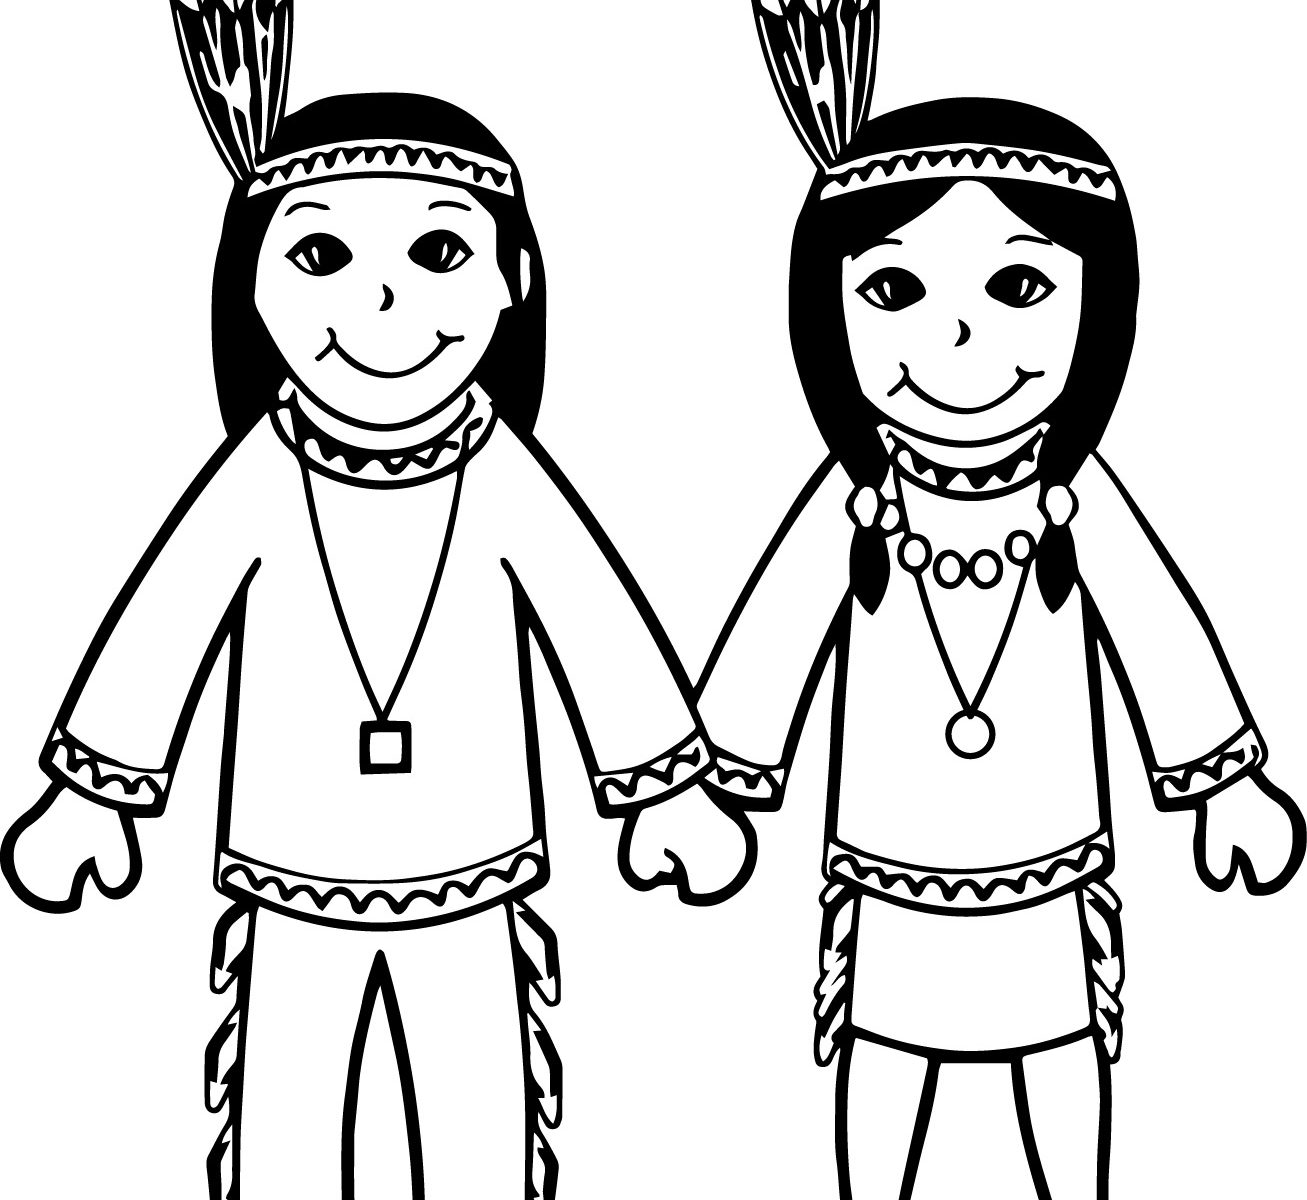 Holding Hands Boy And Girl Coloring Pages   Wiring Diagram Database